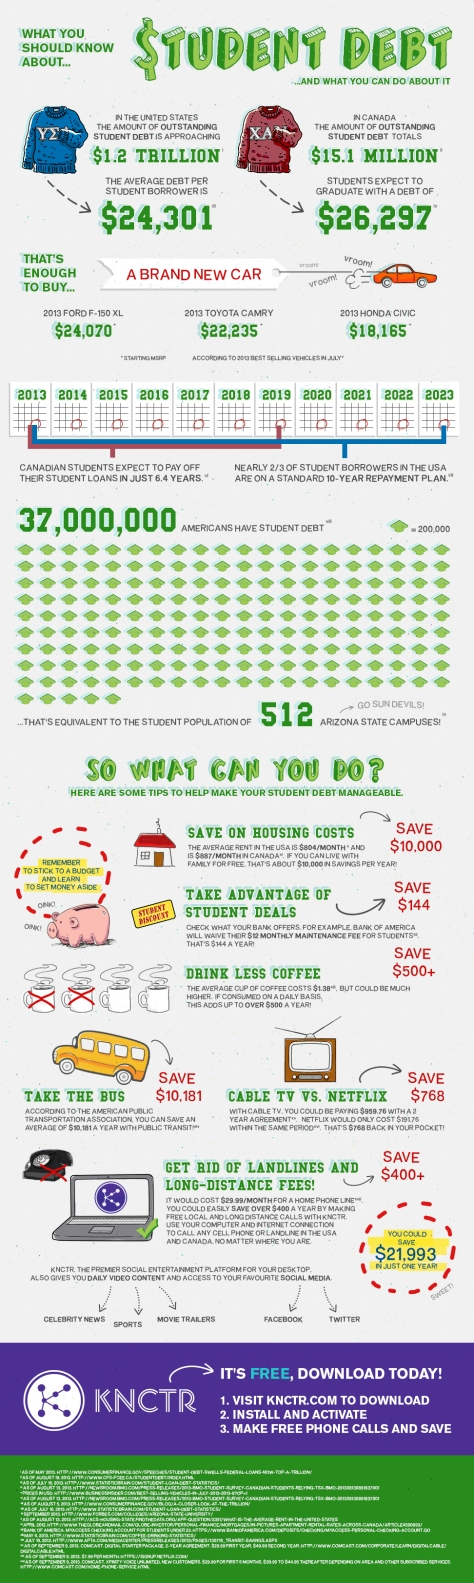 You Should Know And Do About Student Debt